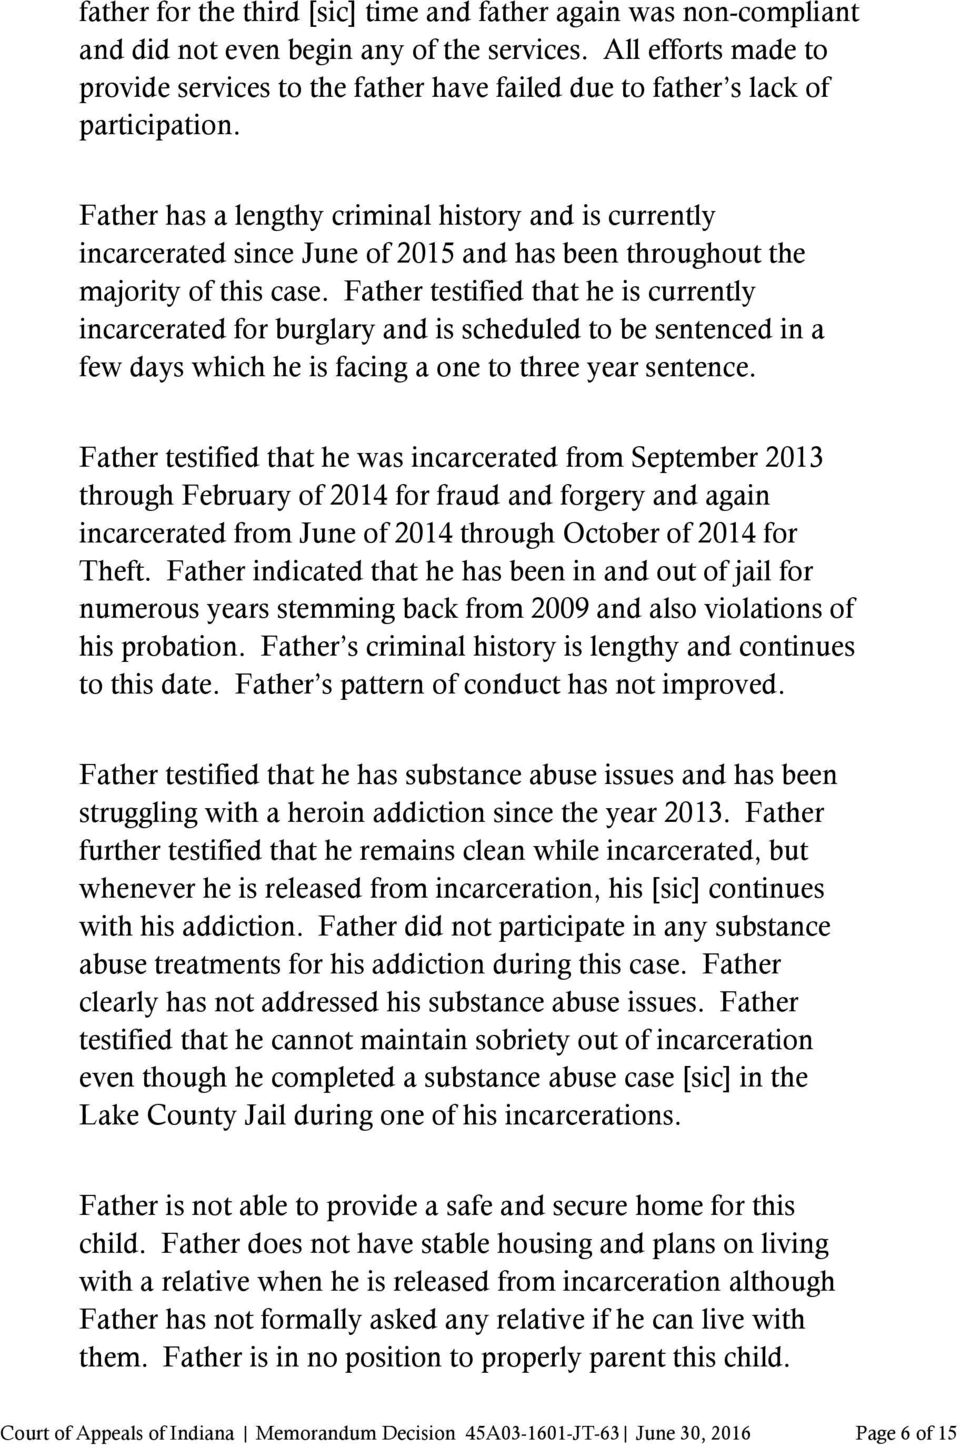 Father has a lengthy criminal history and is currently incarcerated since June of 2015 and has been throughout the majority of this case.